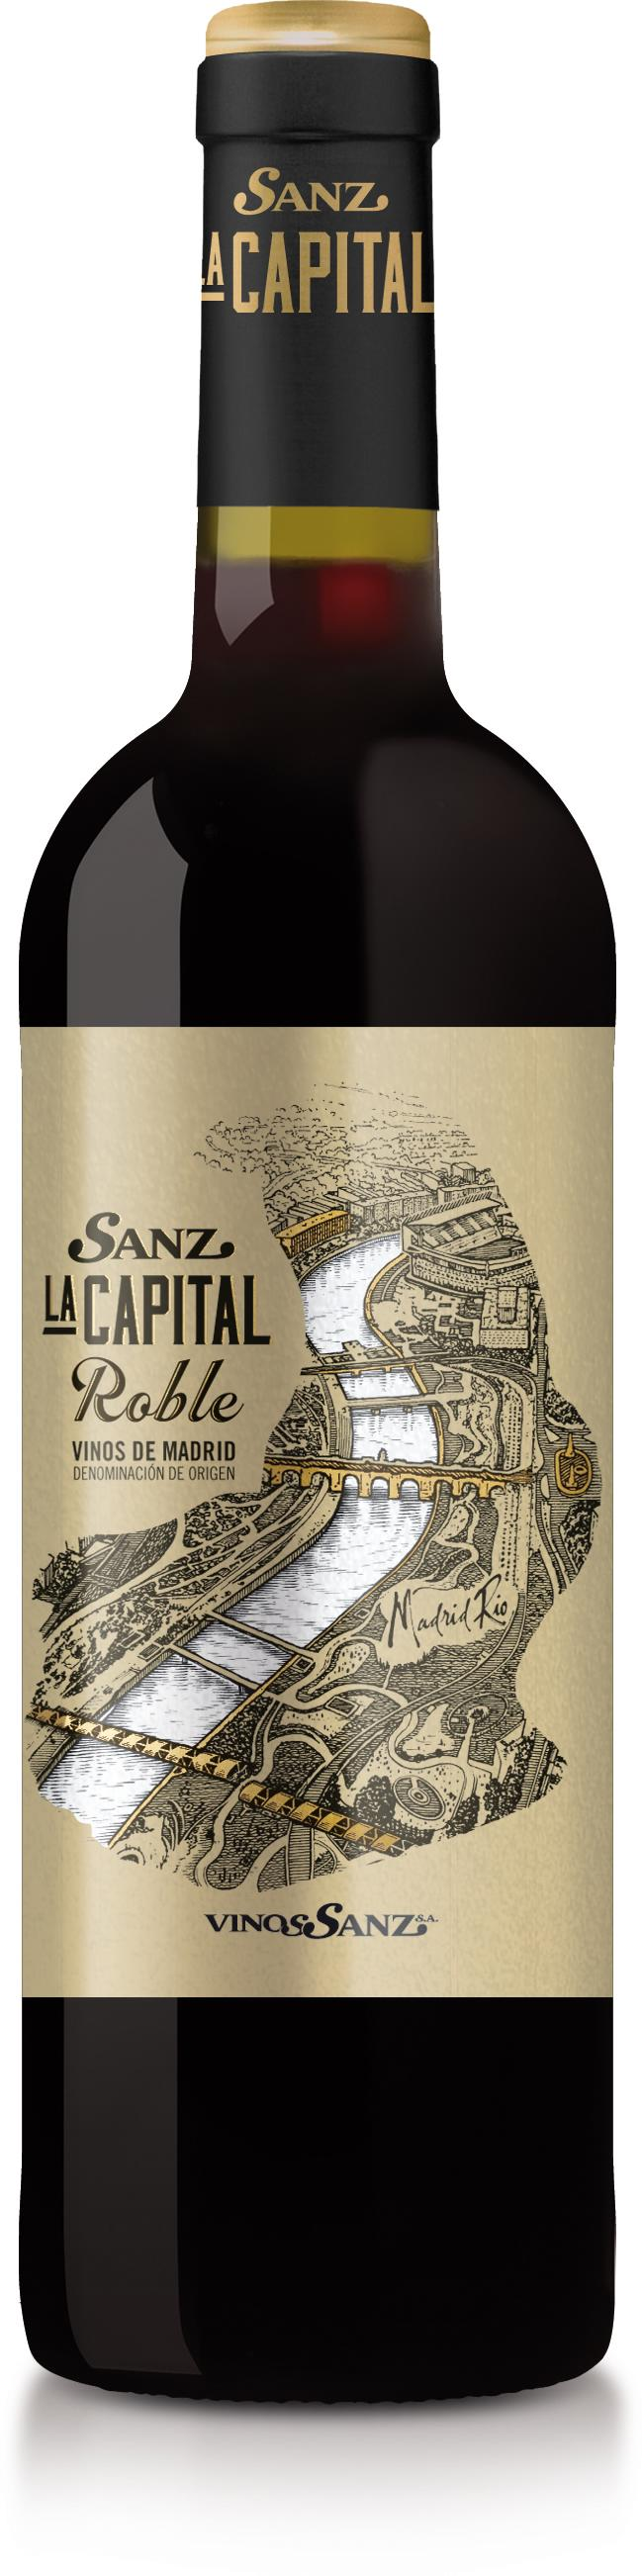 Sanz La Capital Roble 2017- Caja de 6 botellas de 75 cl.